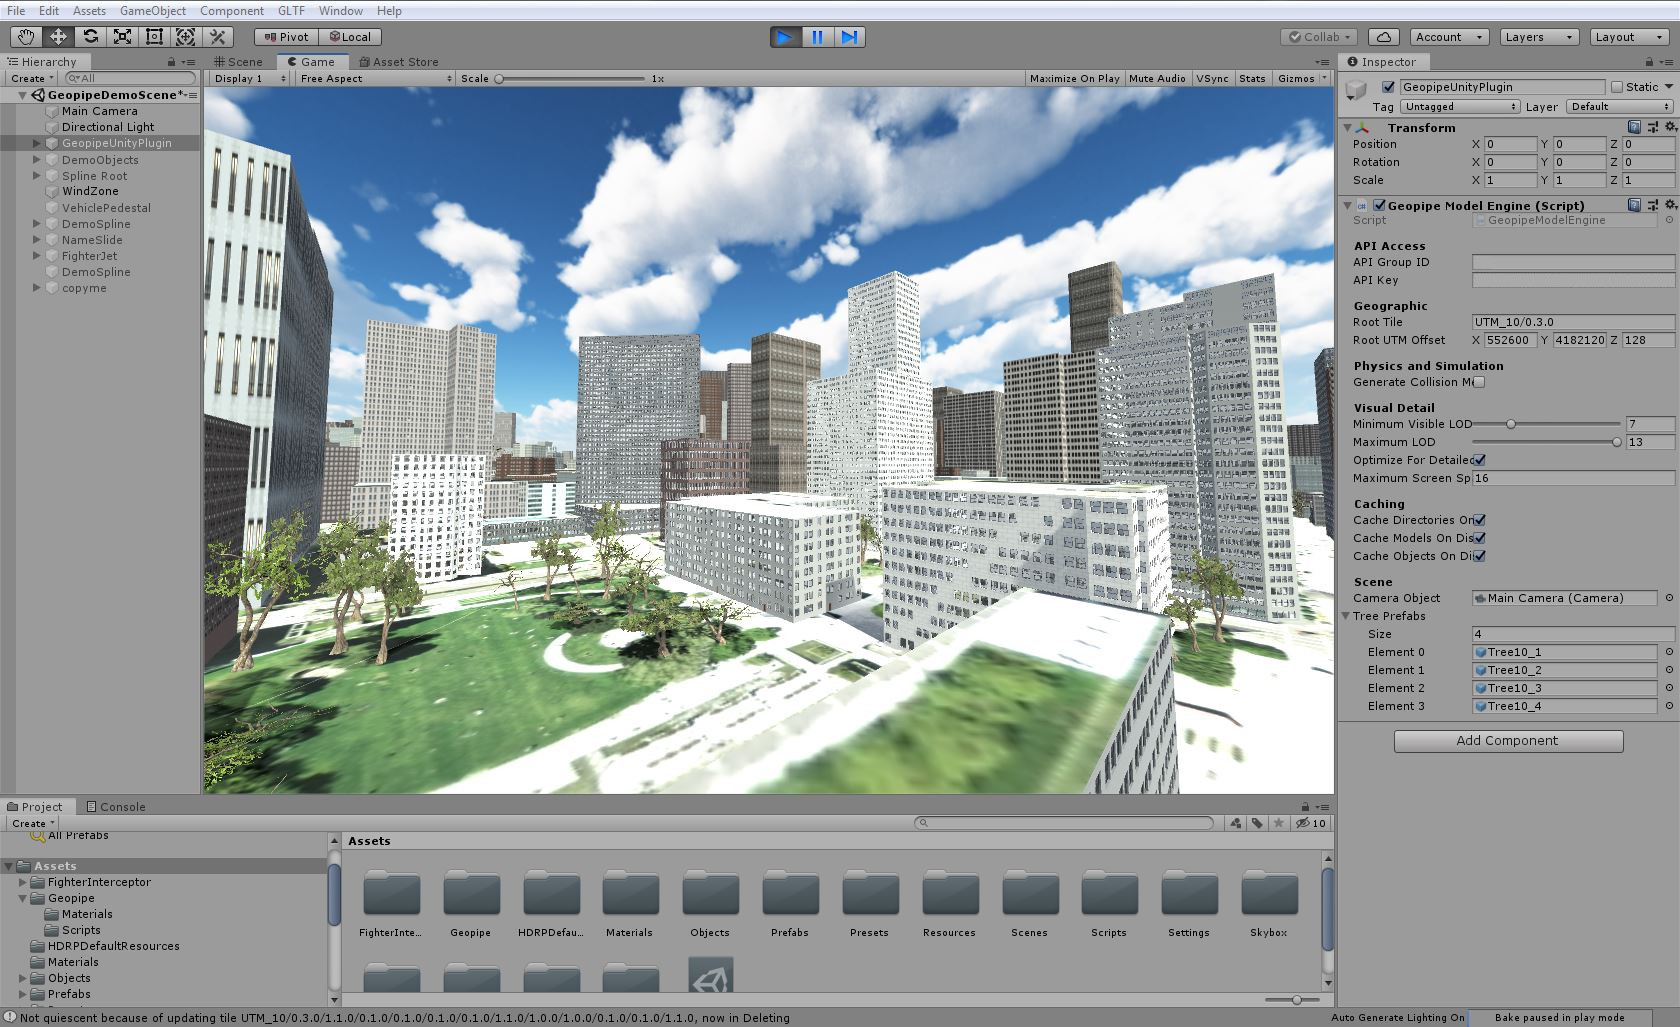 Yerba Buena Gardens and surroundings in Geopipe's virtual San Francisco